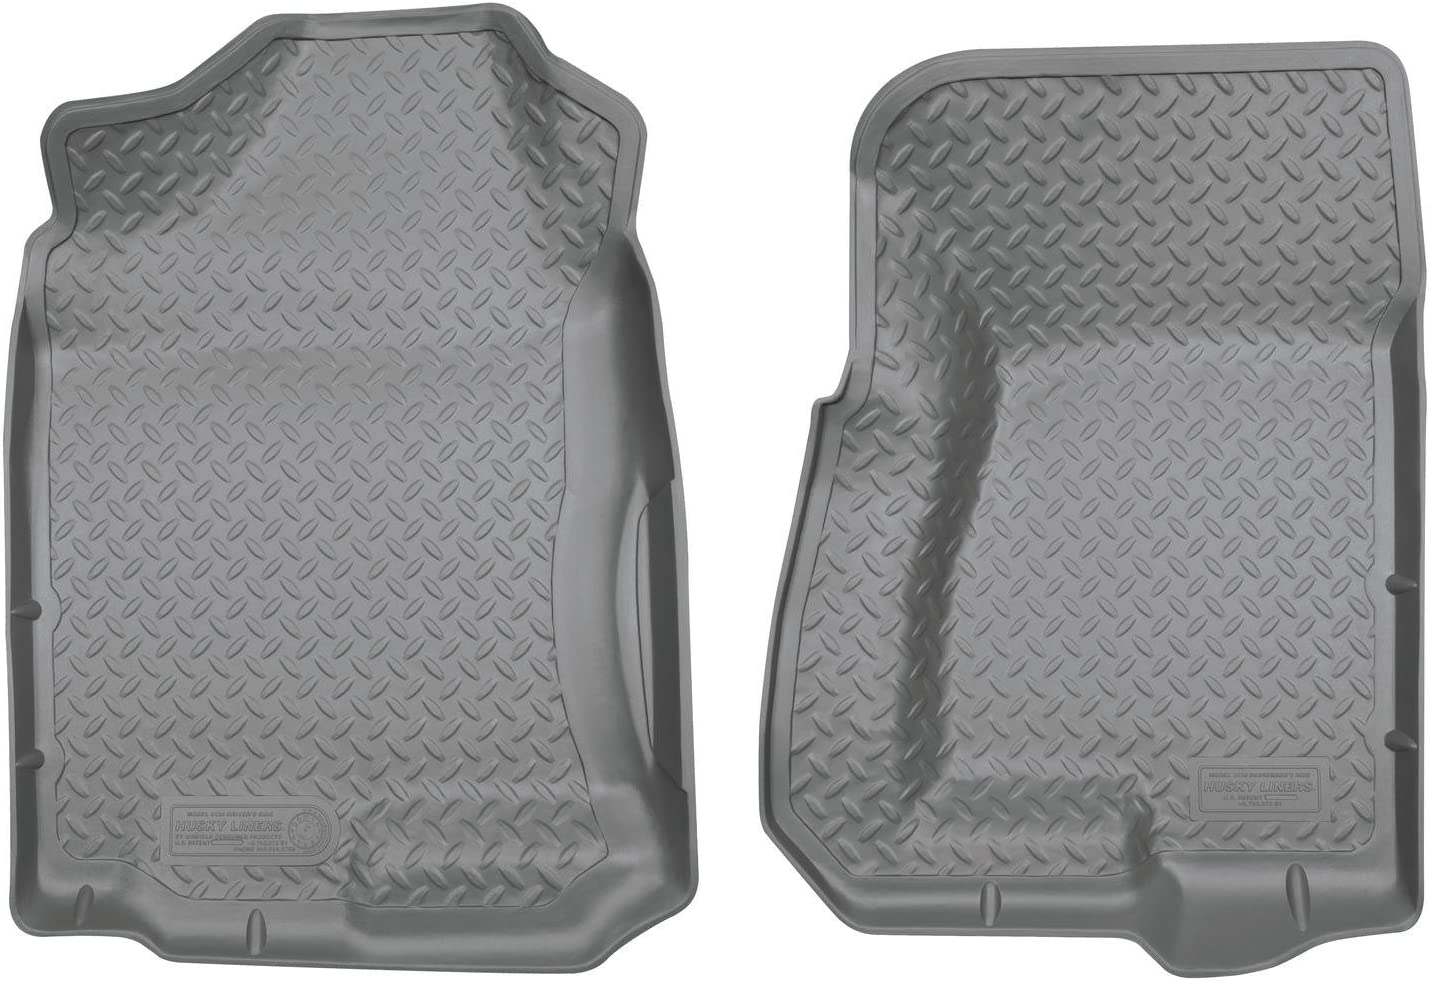 For Chevy Silverado 1500 Classic 07 Pro-line Gray Full Floor Replacement Carpets